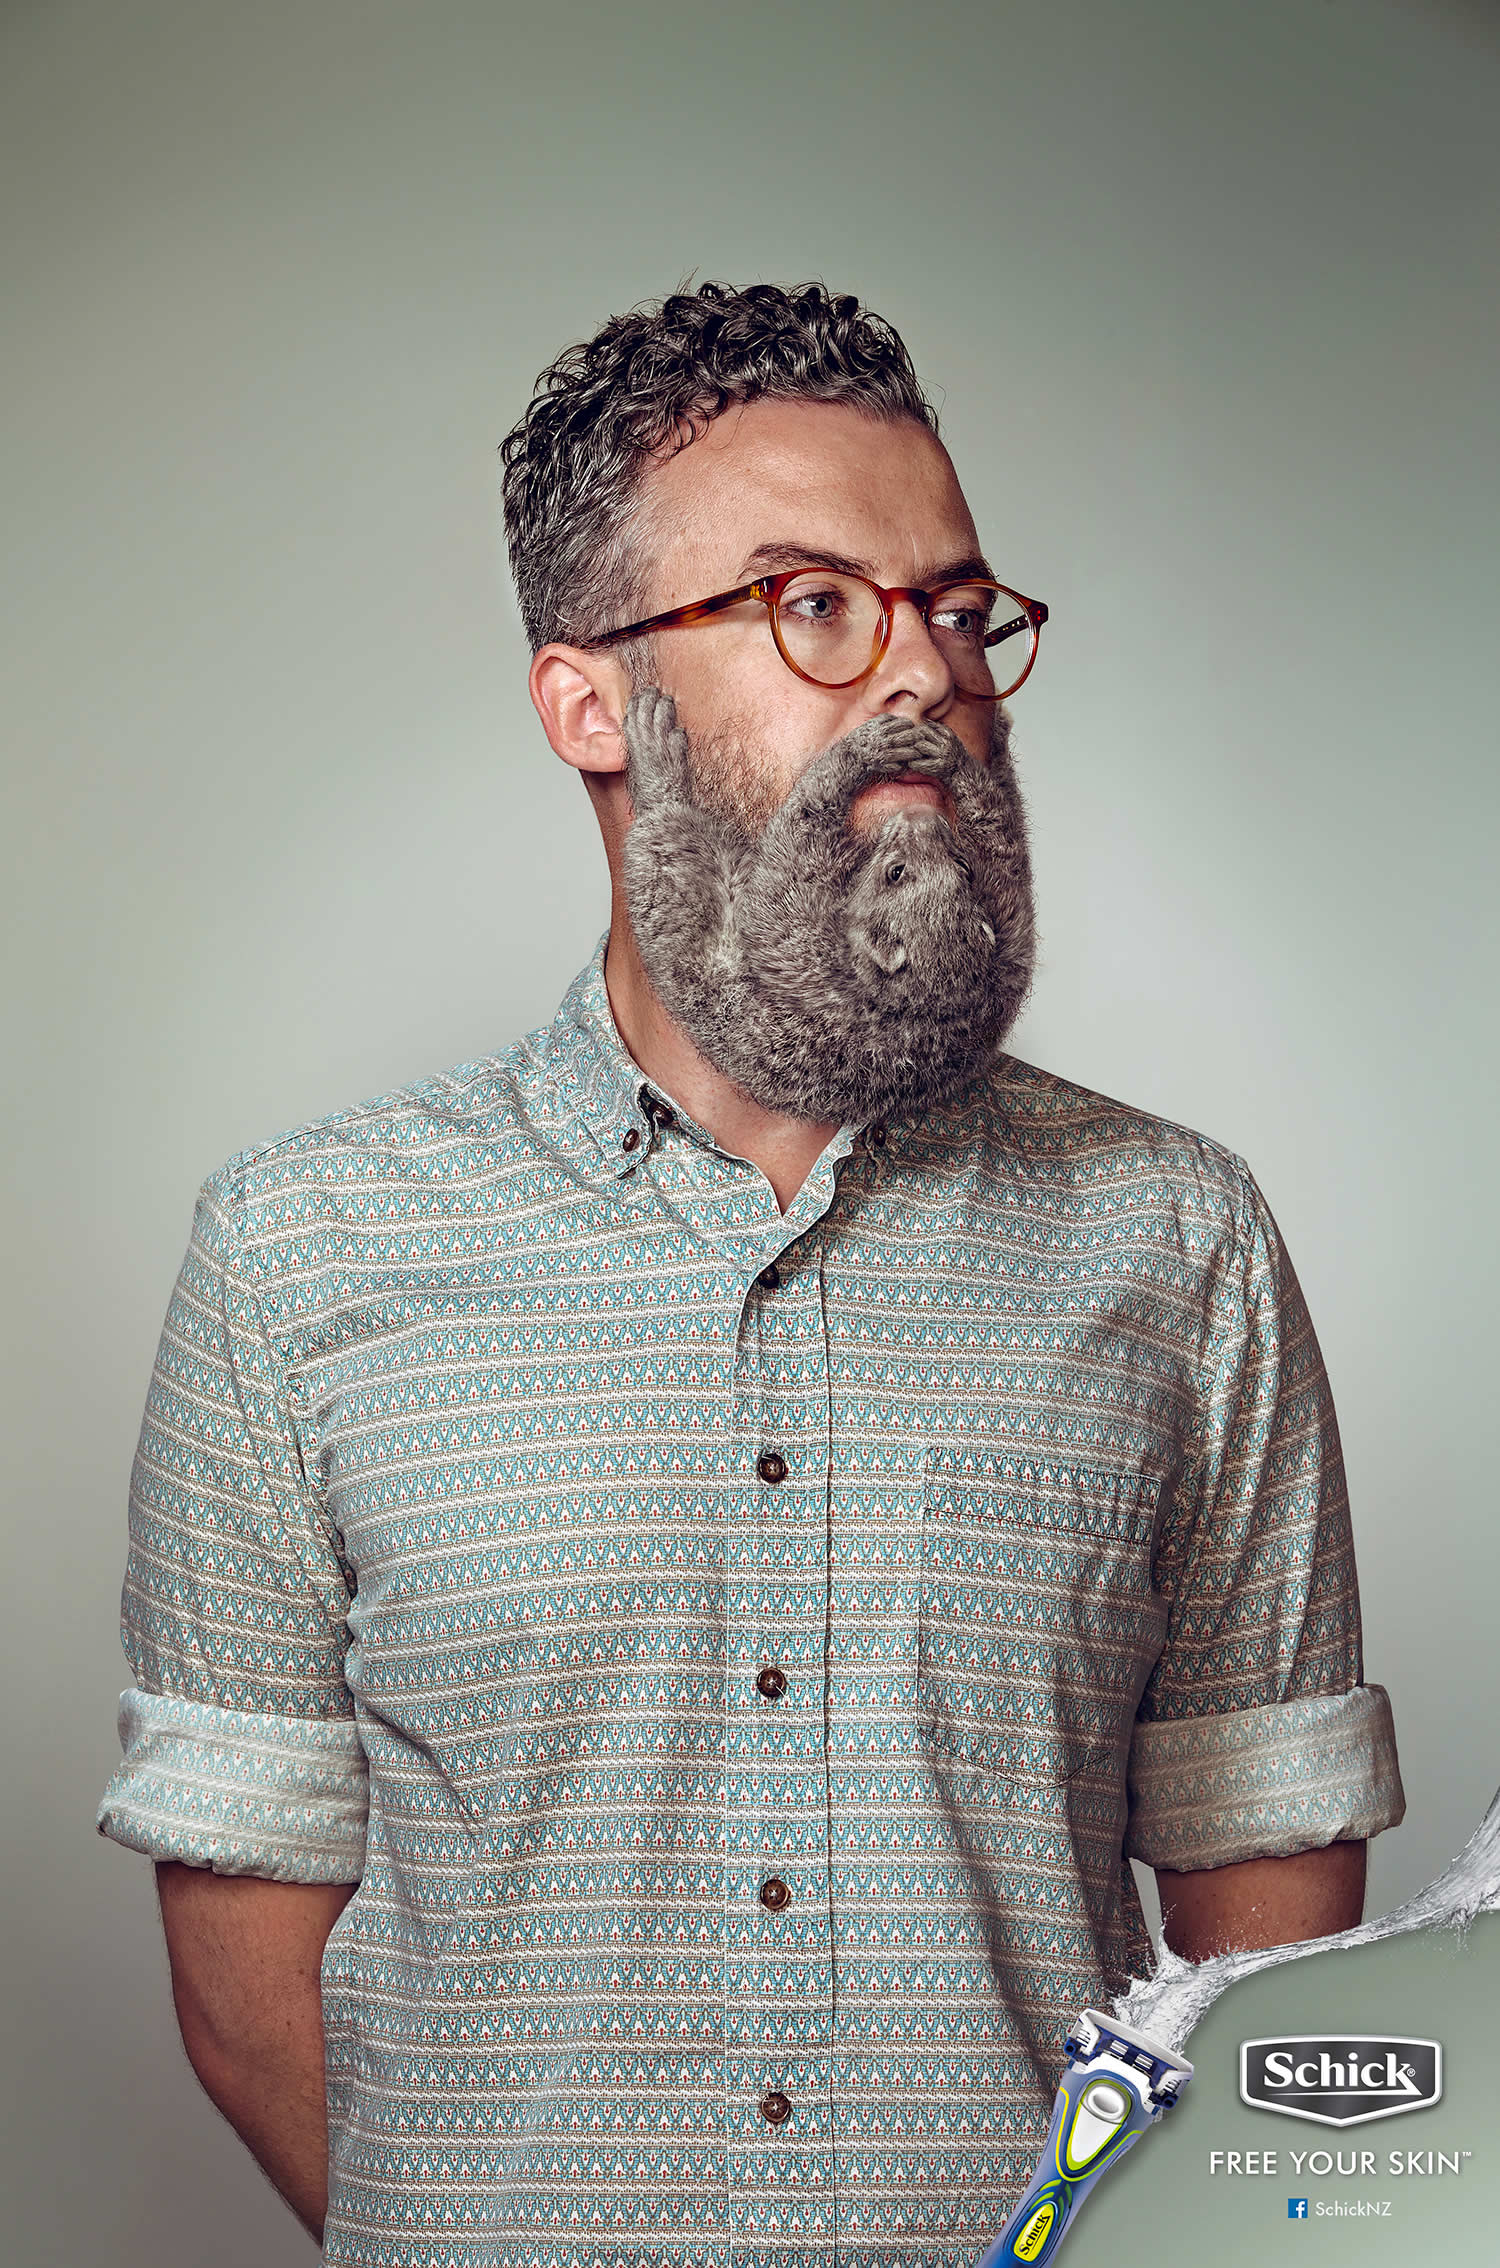 Man with grey beard, Electric Art / Schick NZ. By Sharpe + Associates Inc.